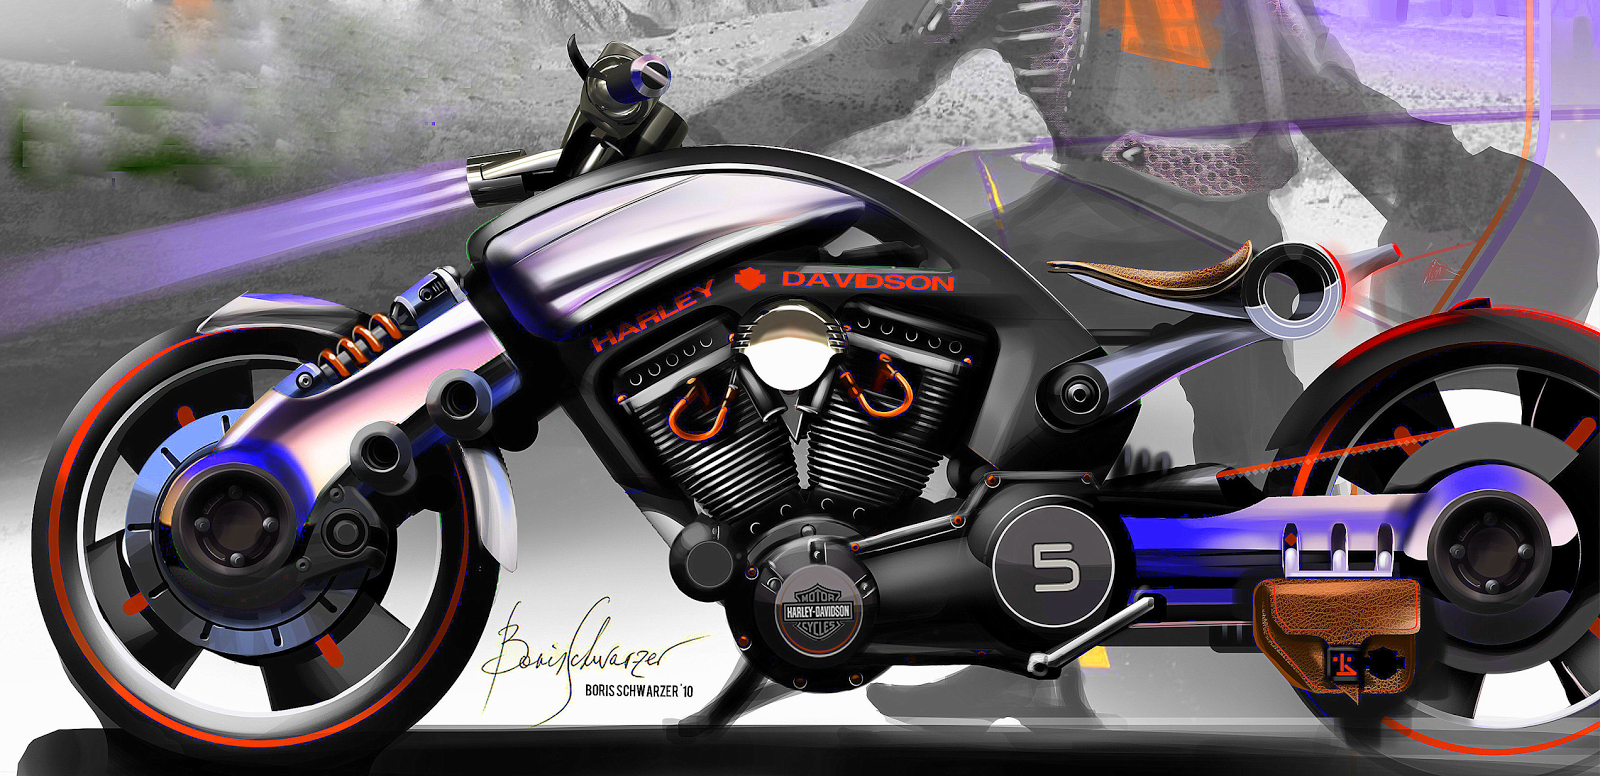 the future of harley-davidson essay Executive summary harley davidson is an american motorcycle company founded in 1903 by william s harley and arthur davidson in the following 108 years of business, the harley davidson business has endured the peaks and troughs of economies to be recognised as an iconic brand in the motorcycle industry.